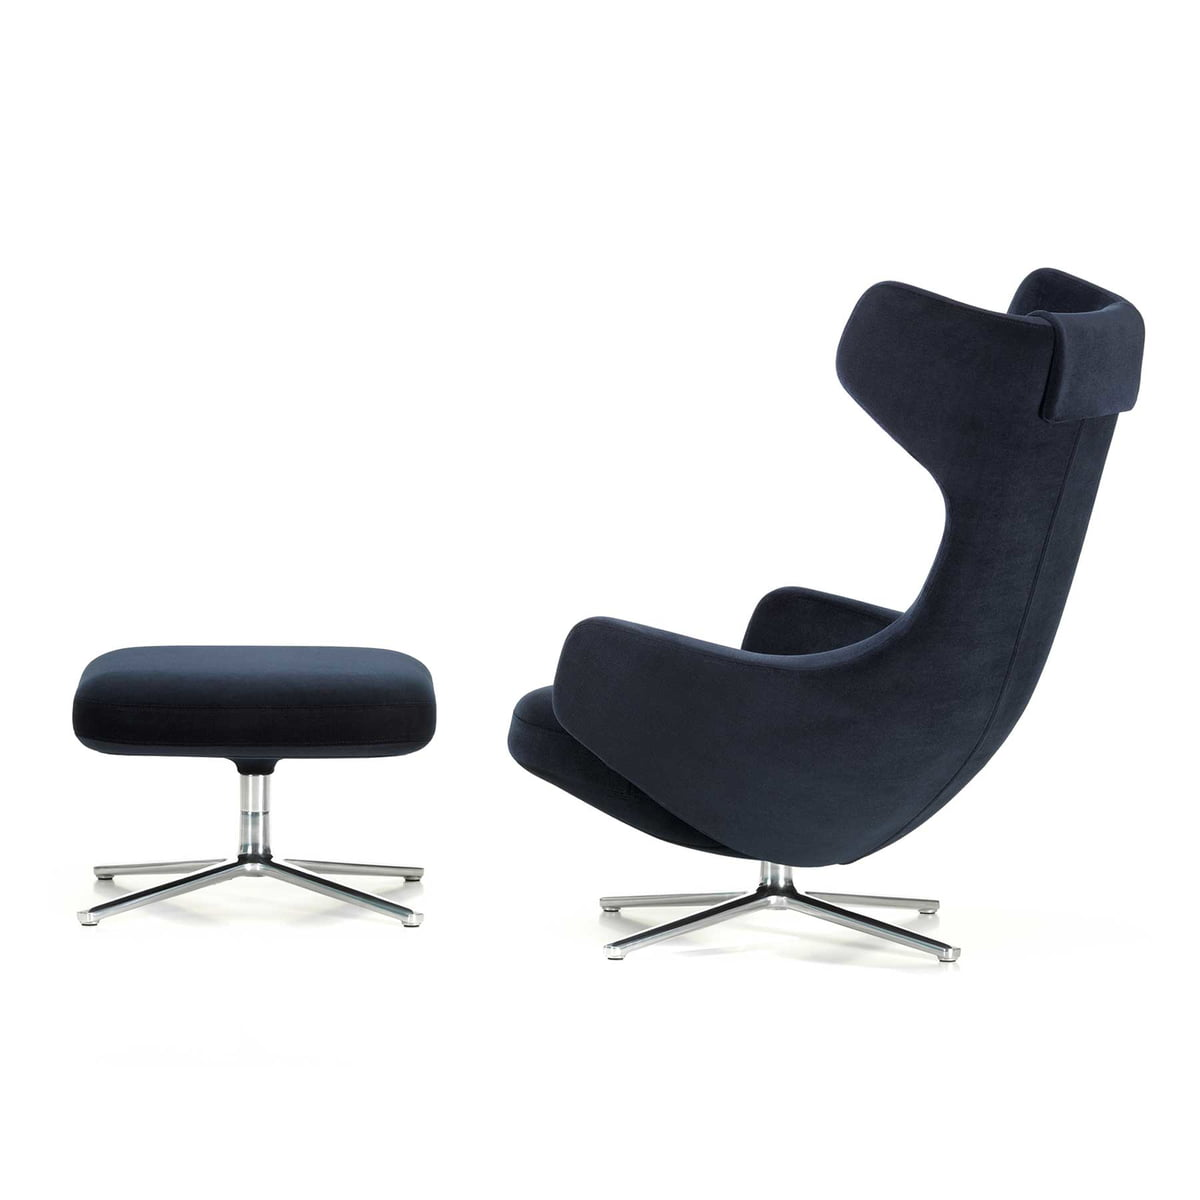 grand repos armchair ottoman vitra shop. Black Bedroom Furniture Sets. Home Design Ideas